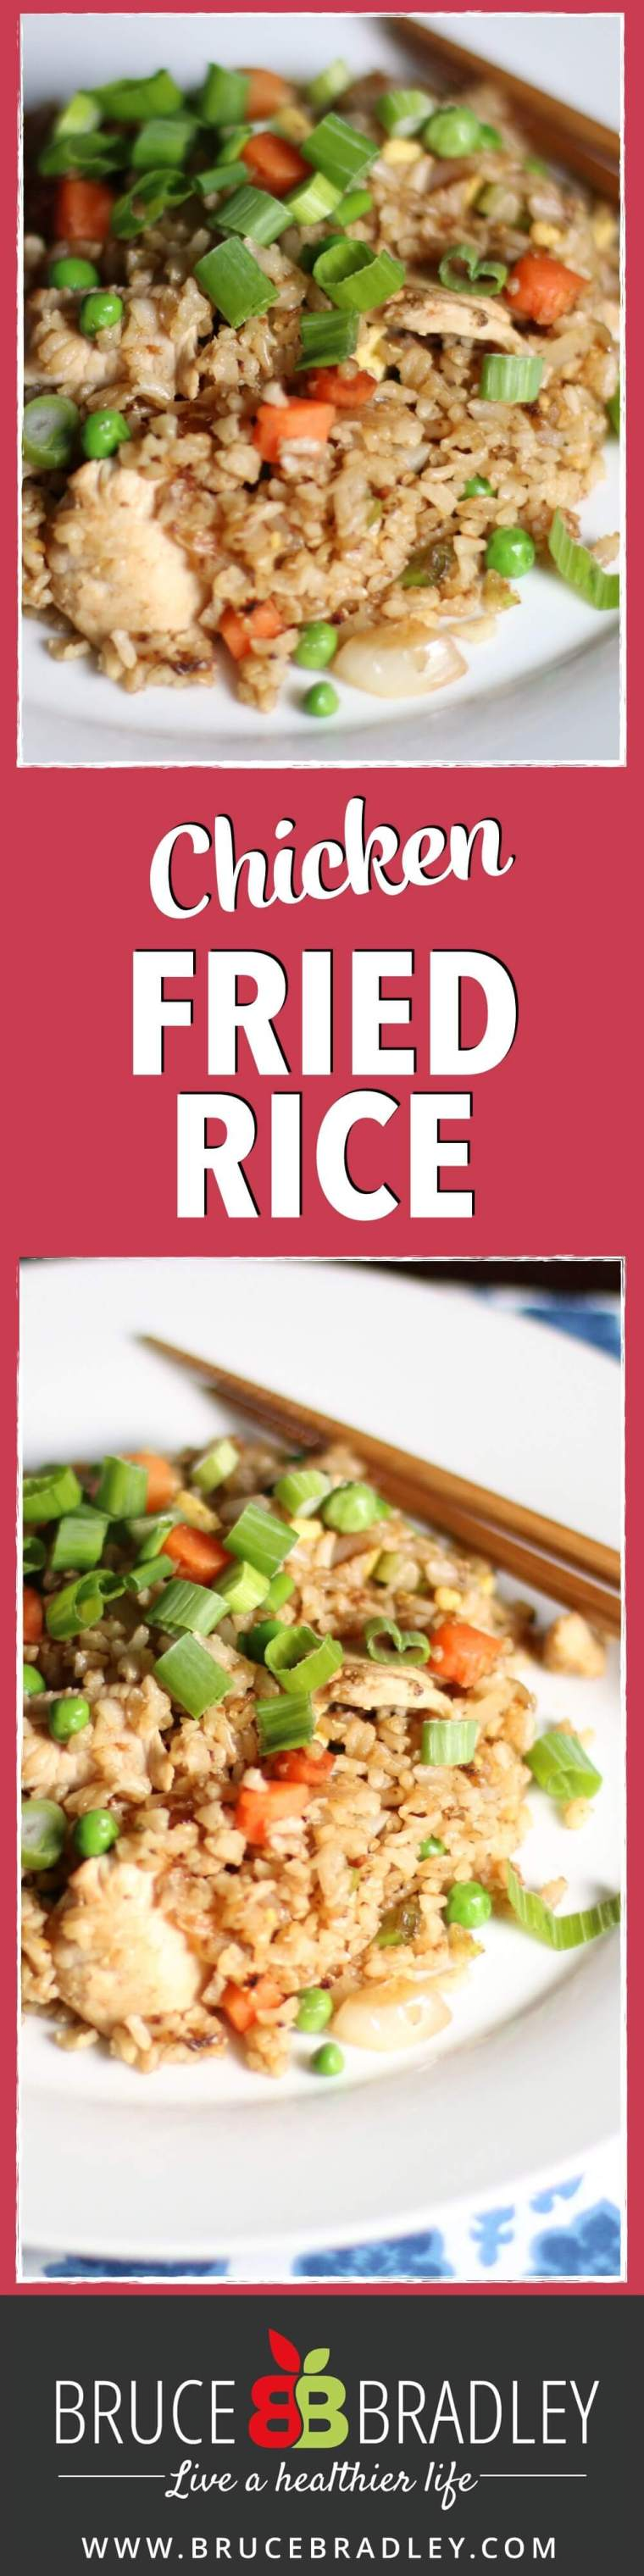 Bruce Bradley's delicious Chicken Fried Rice uses brown rice and 100% real ingredients with lots of veggies!